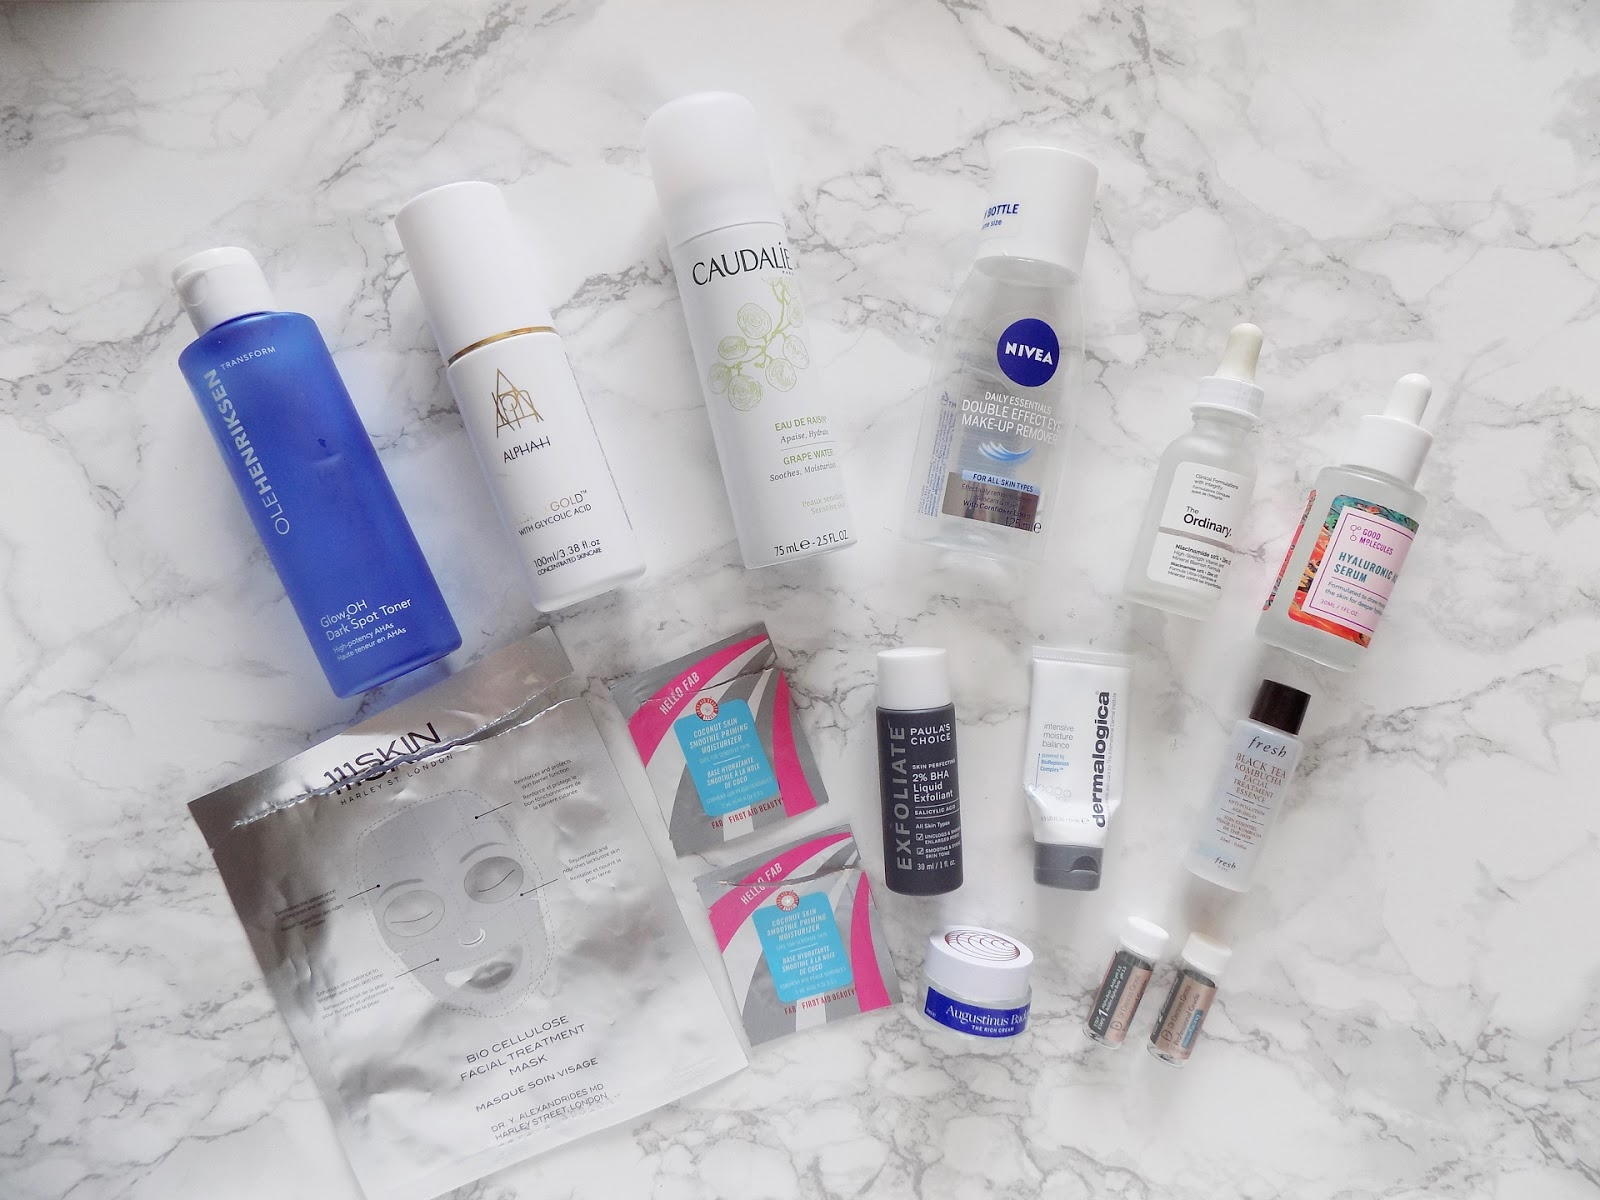 skincare empties reviews alpha h ole henriksen Paulas choice